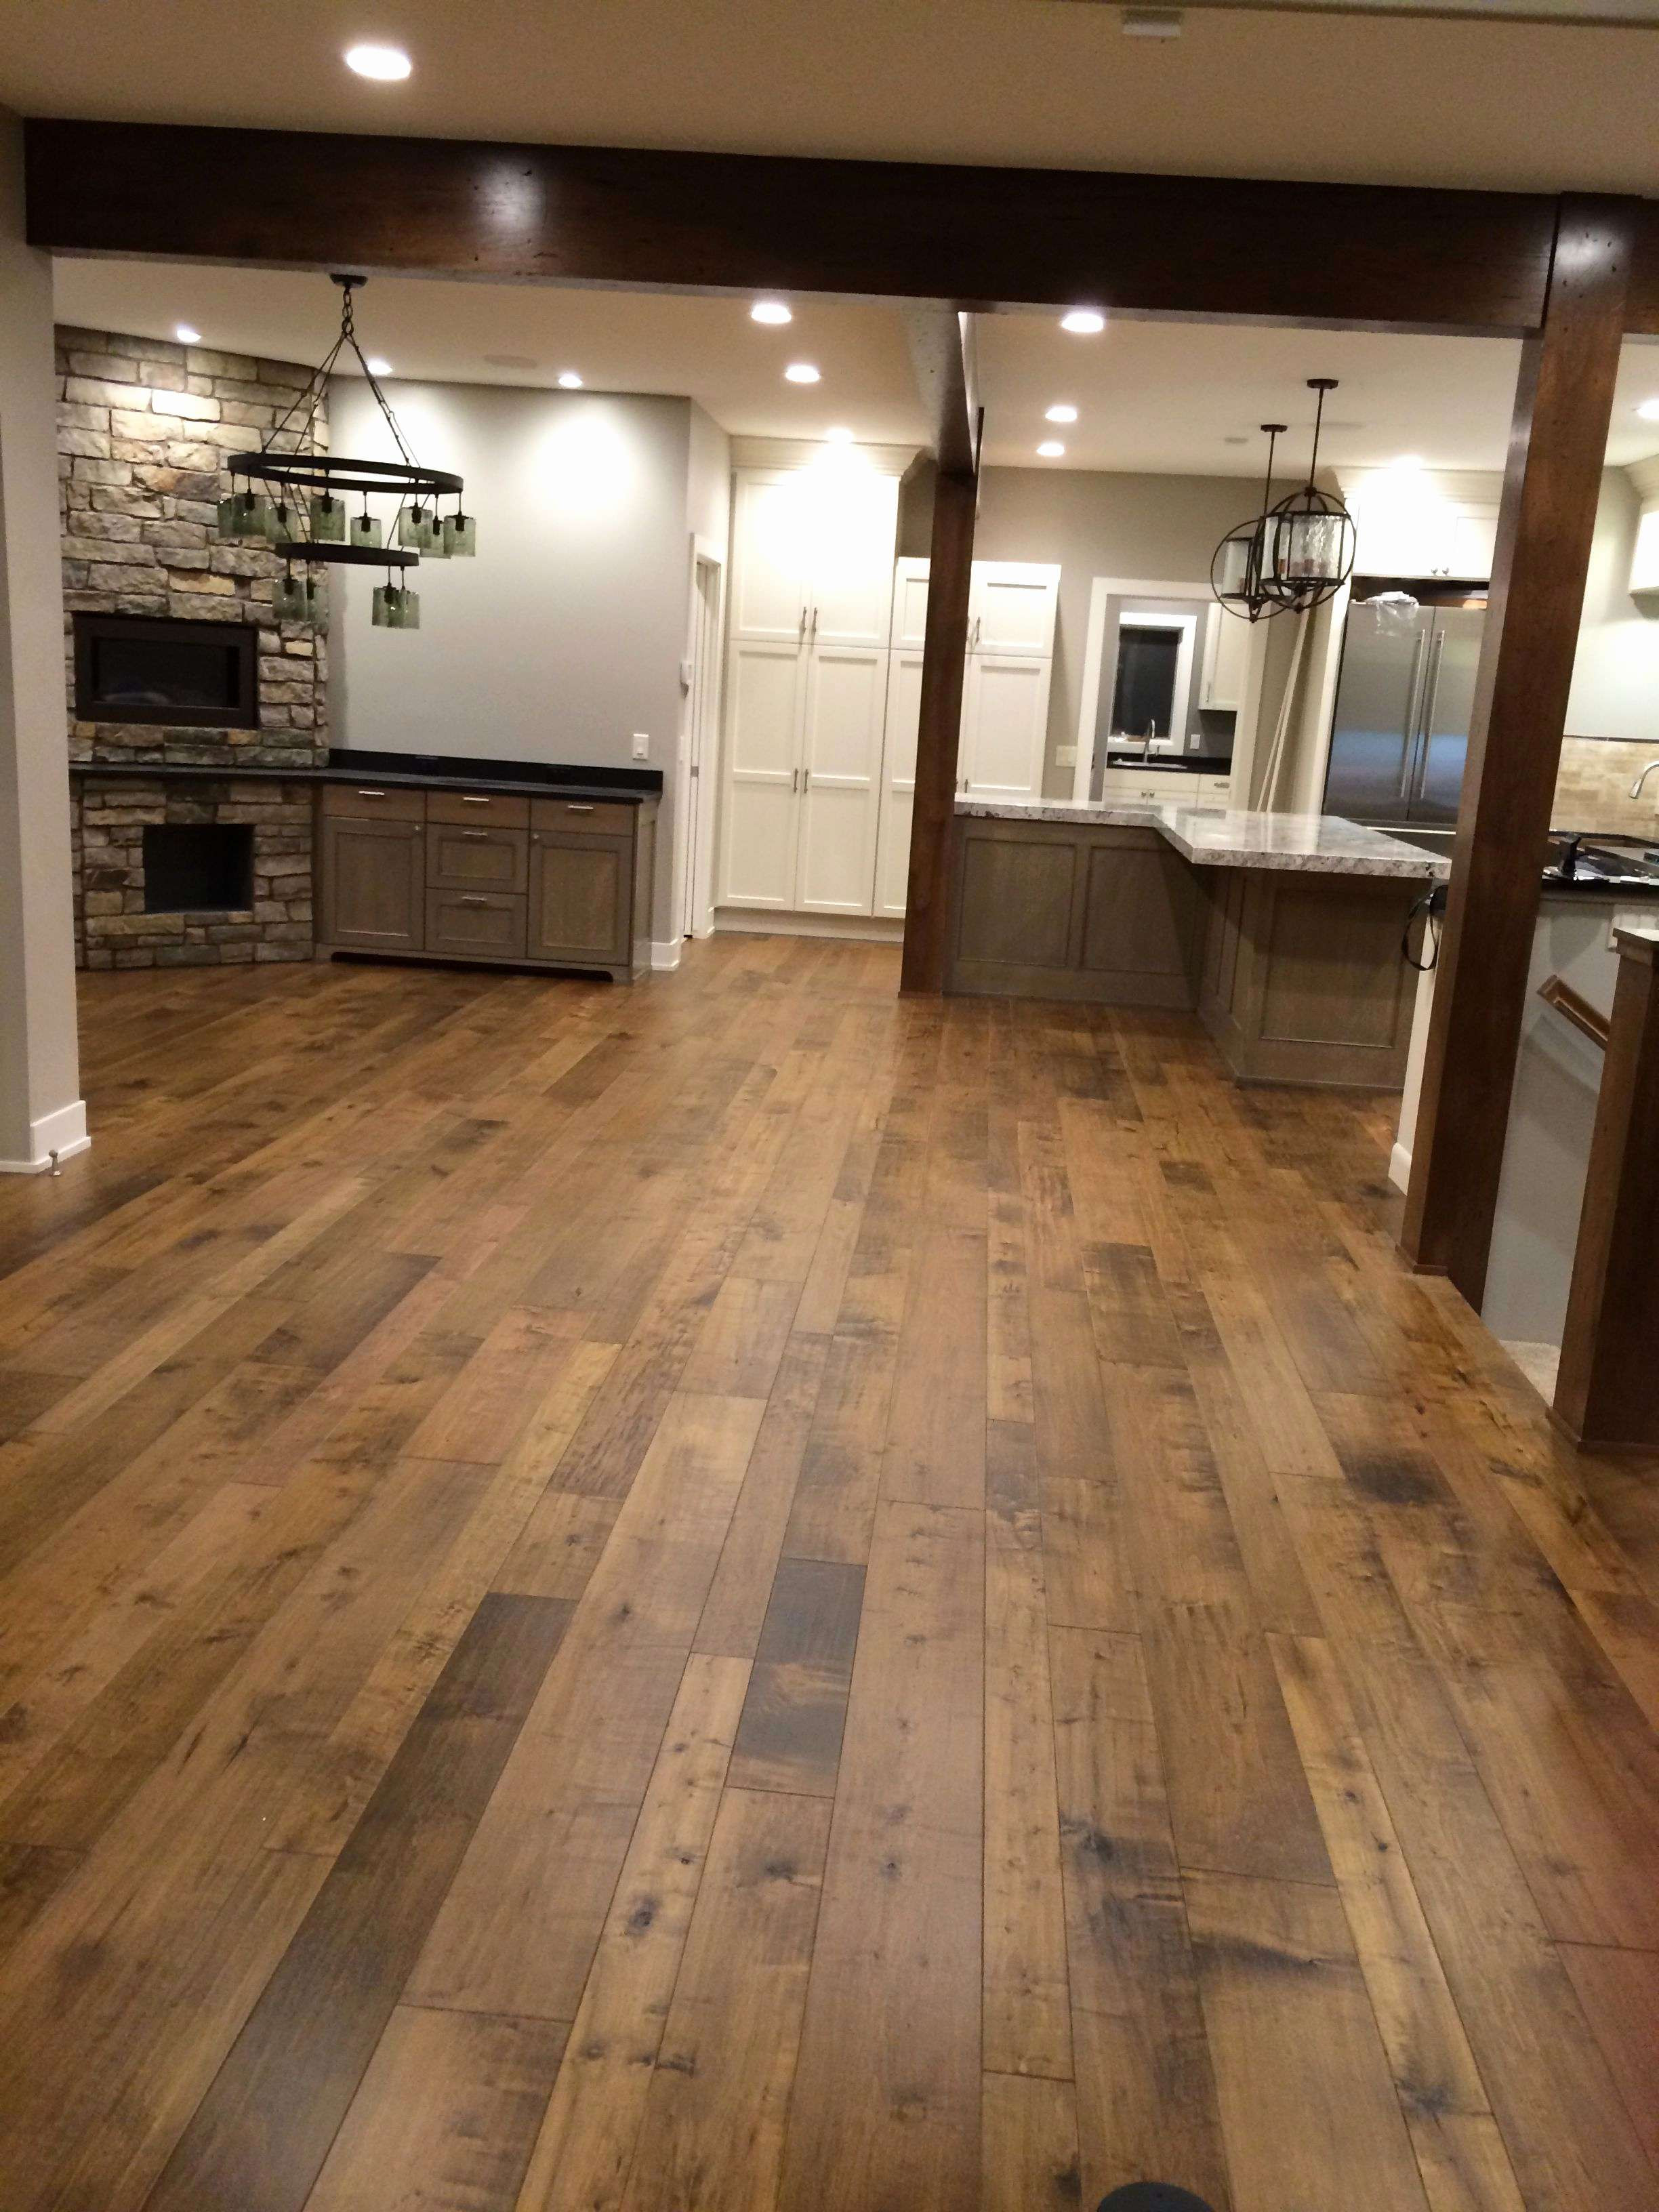 Hardwood Flooring Yorkdale Of 21 Best Images Of Hardwood Flooring Images for Home Plan Cottage Regarding Hardwood Flooring Images Elegant 50 Beautiful Hardwood Floor Designs 50 S